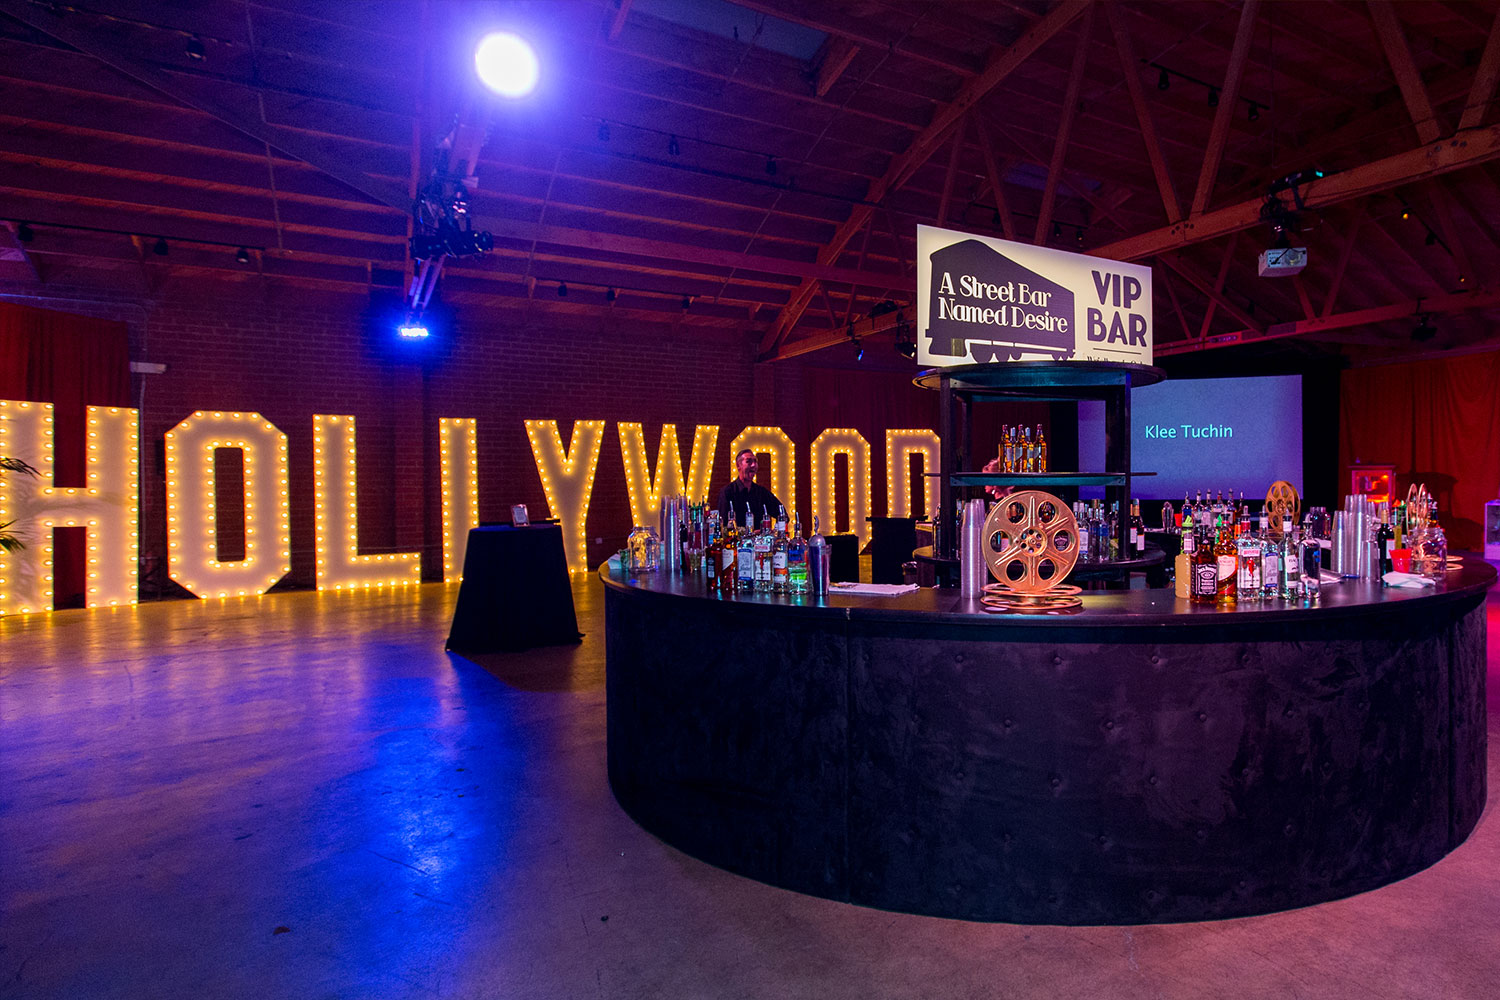 toast-justice-ball-hollywood-event-prop-create-10twelve.jpg